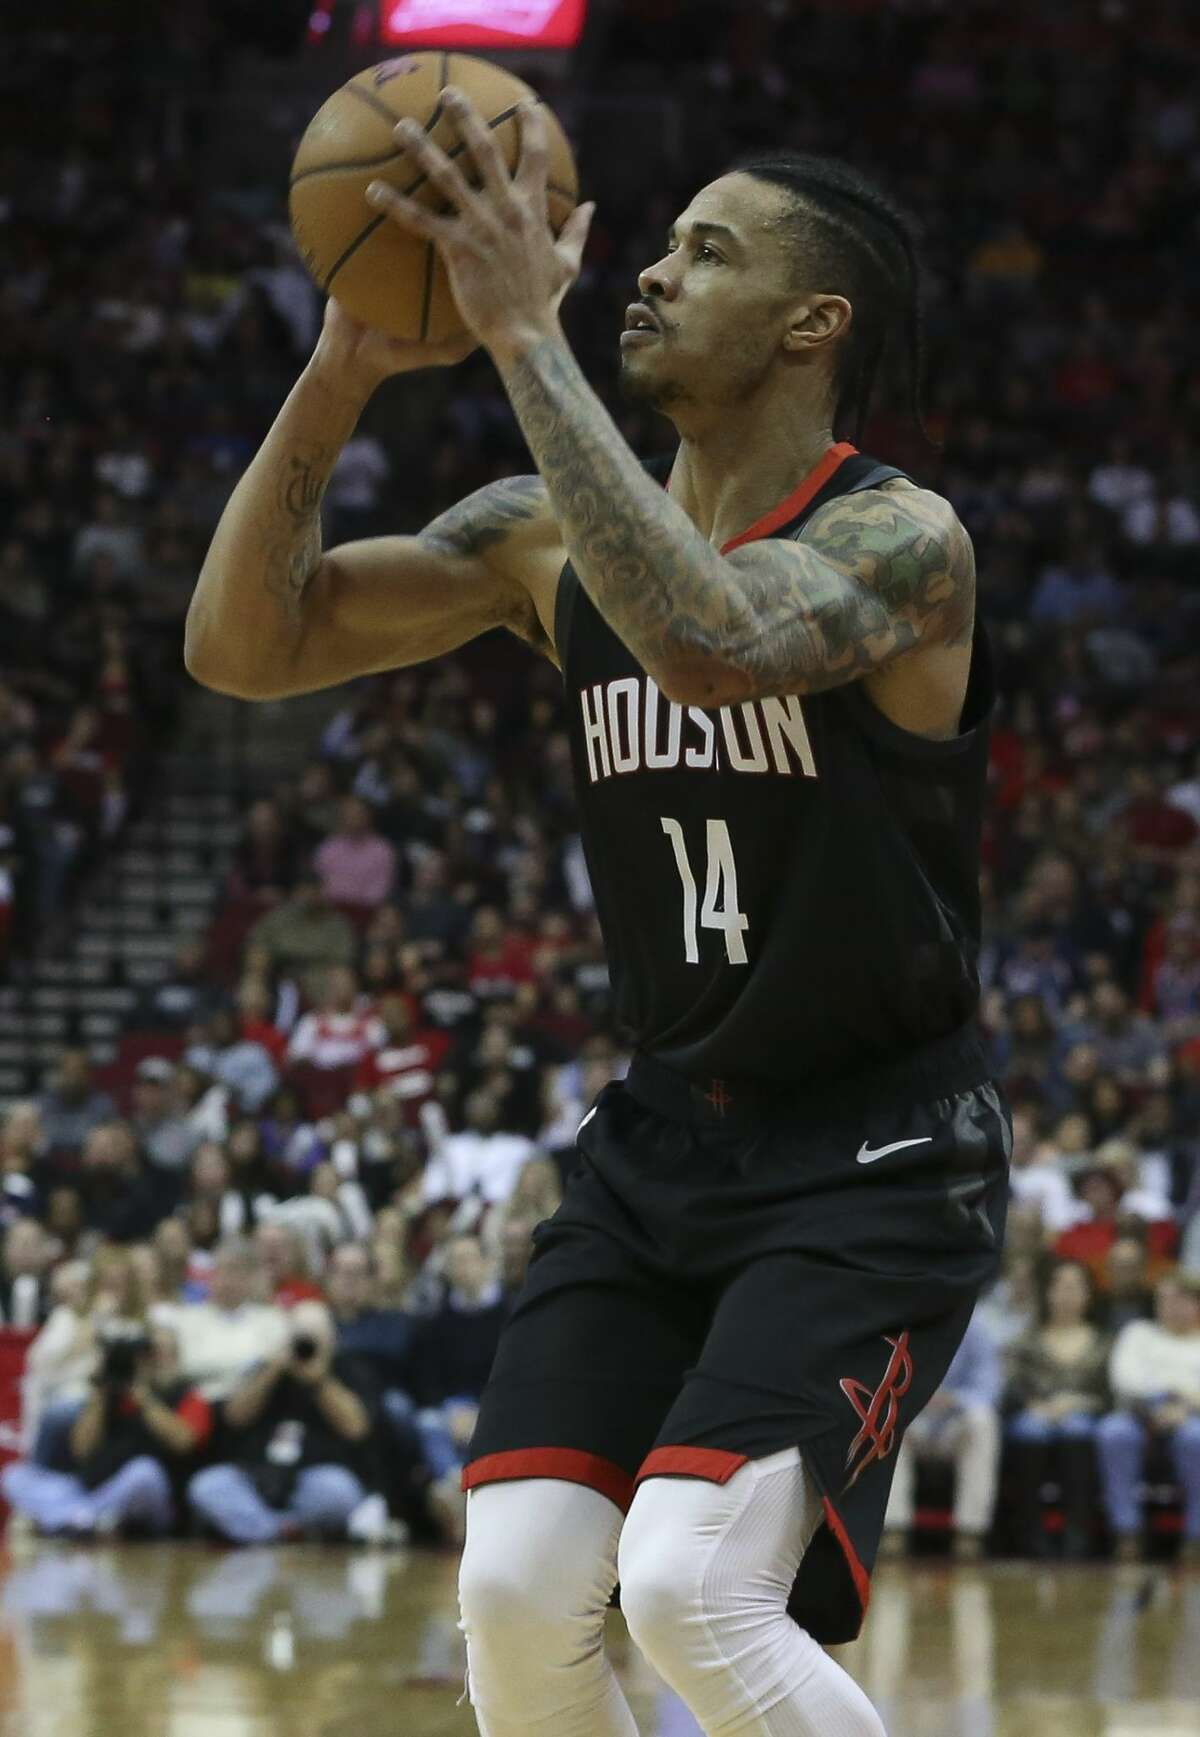 Houston Rockets guard Gerald Green (14) aims for a three-pointer during the fourth quarter of the NBA game against the San Antonio Spurs at Toyota Center on Saturday, Dec. 22, 2018, in Houston. The Houston Rockets defeated the San Antonio Spurs 108-101.